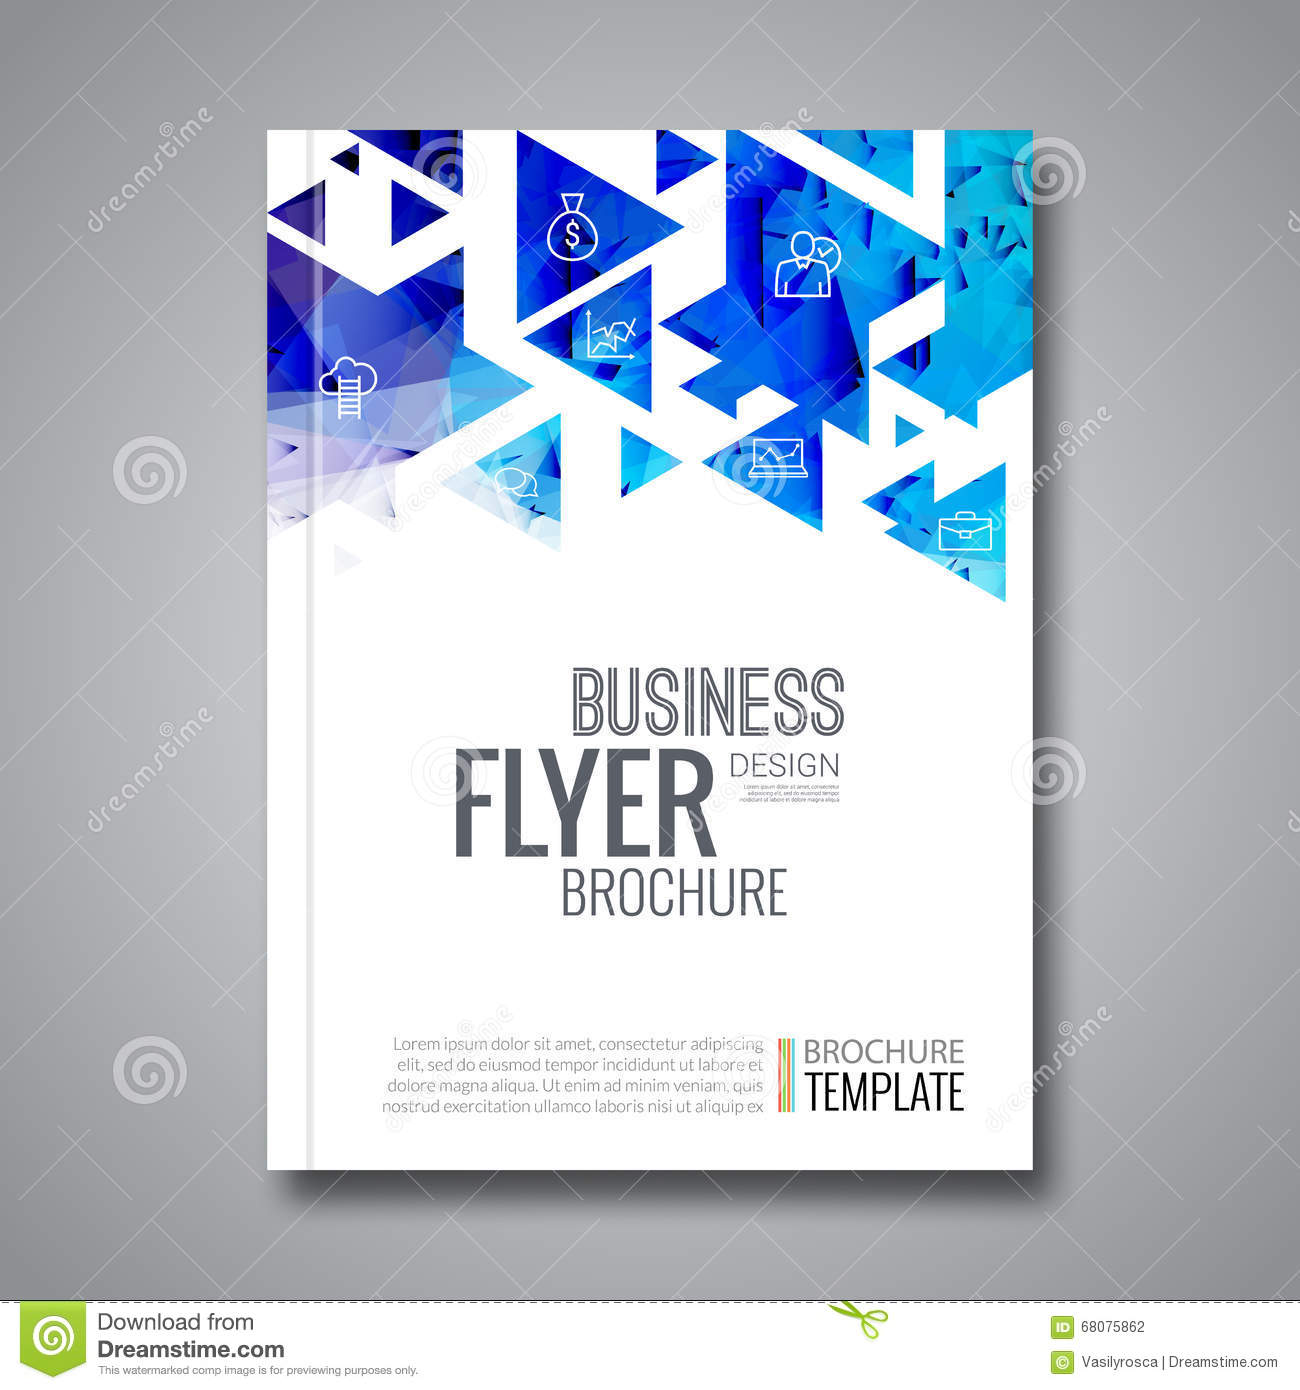 Background Design For Book Cover : Cover report colorful triangle geometric prospectus design